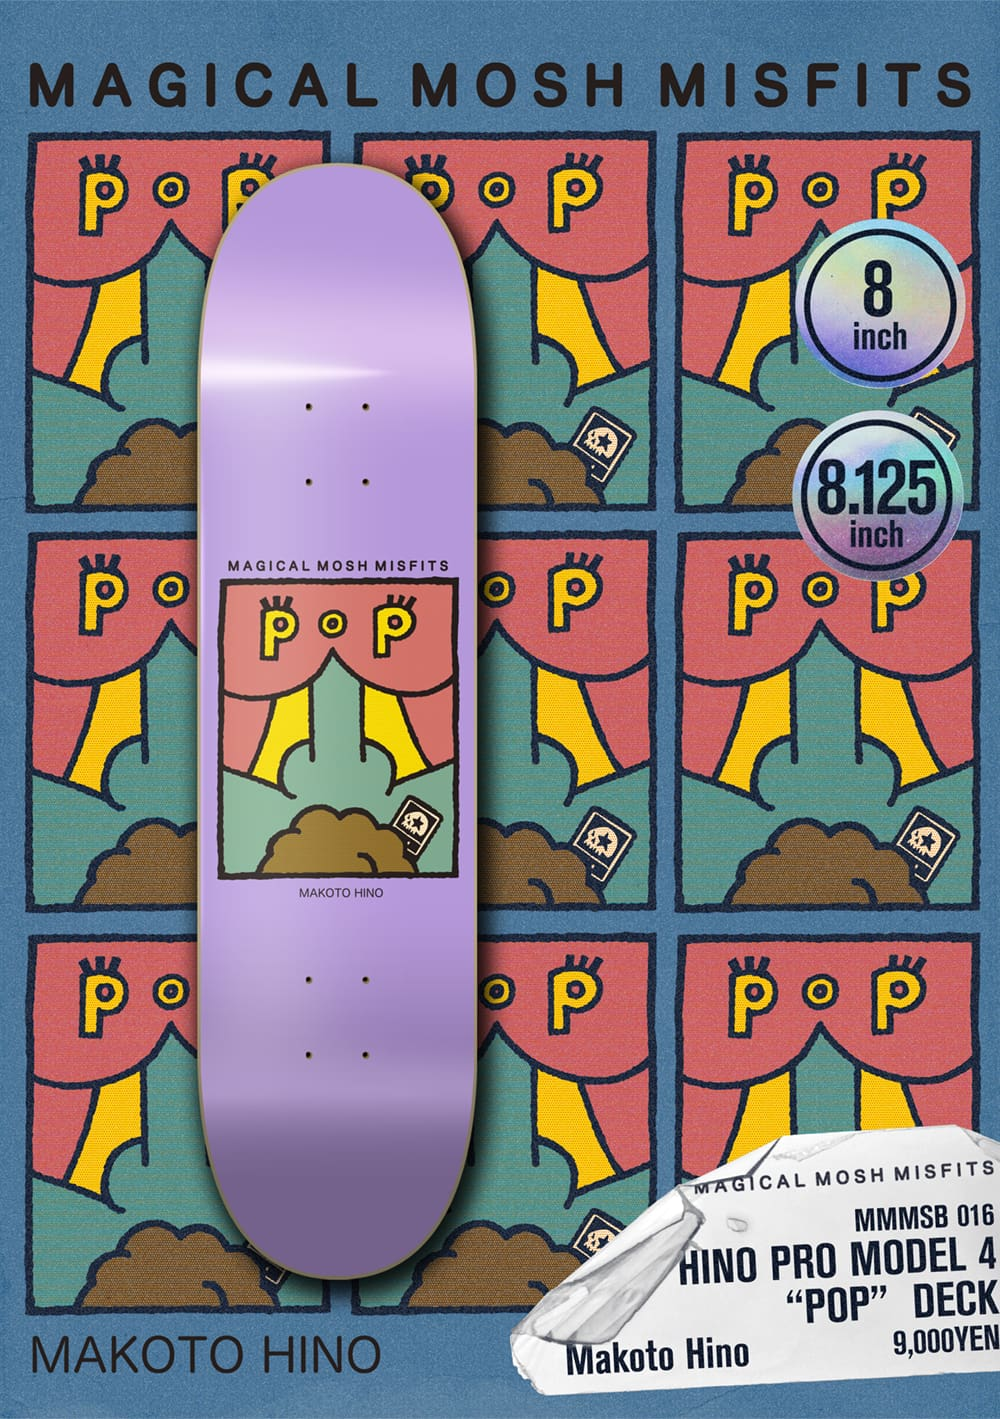 "HINO PRO MODEL 4 ""POP"" DECK"